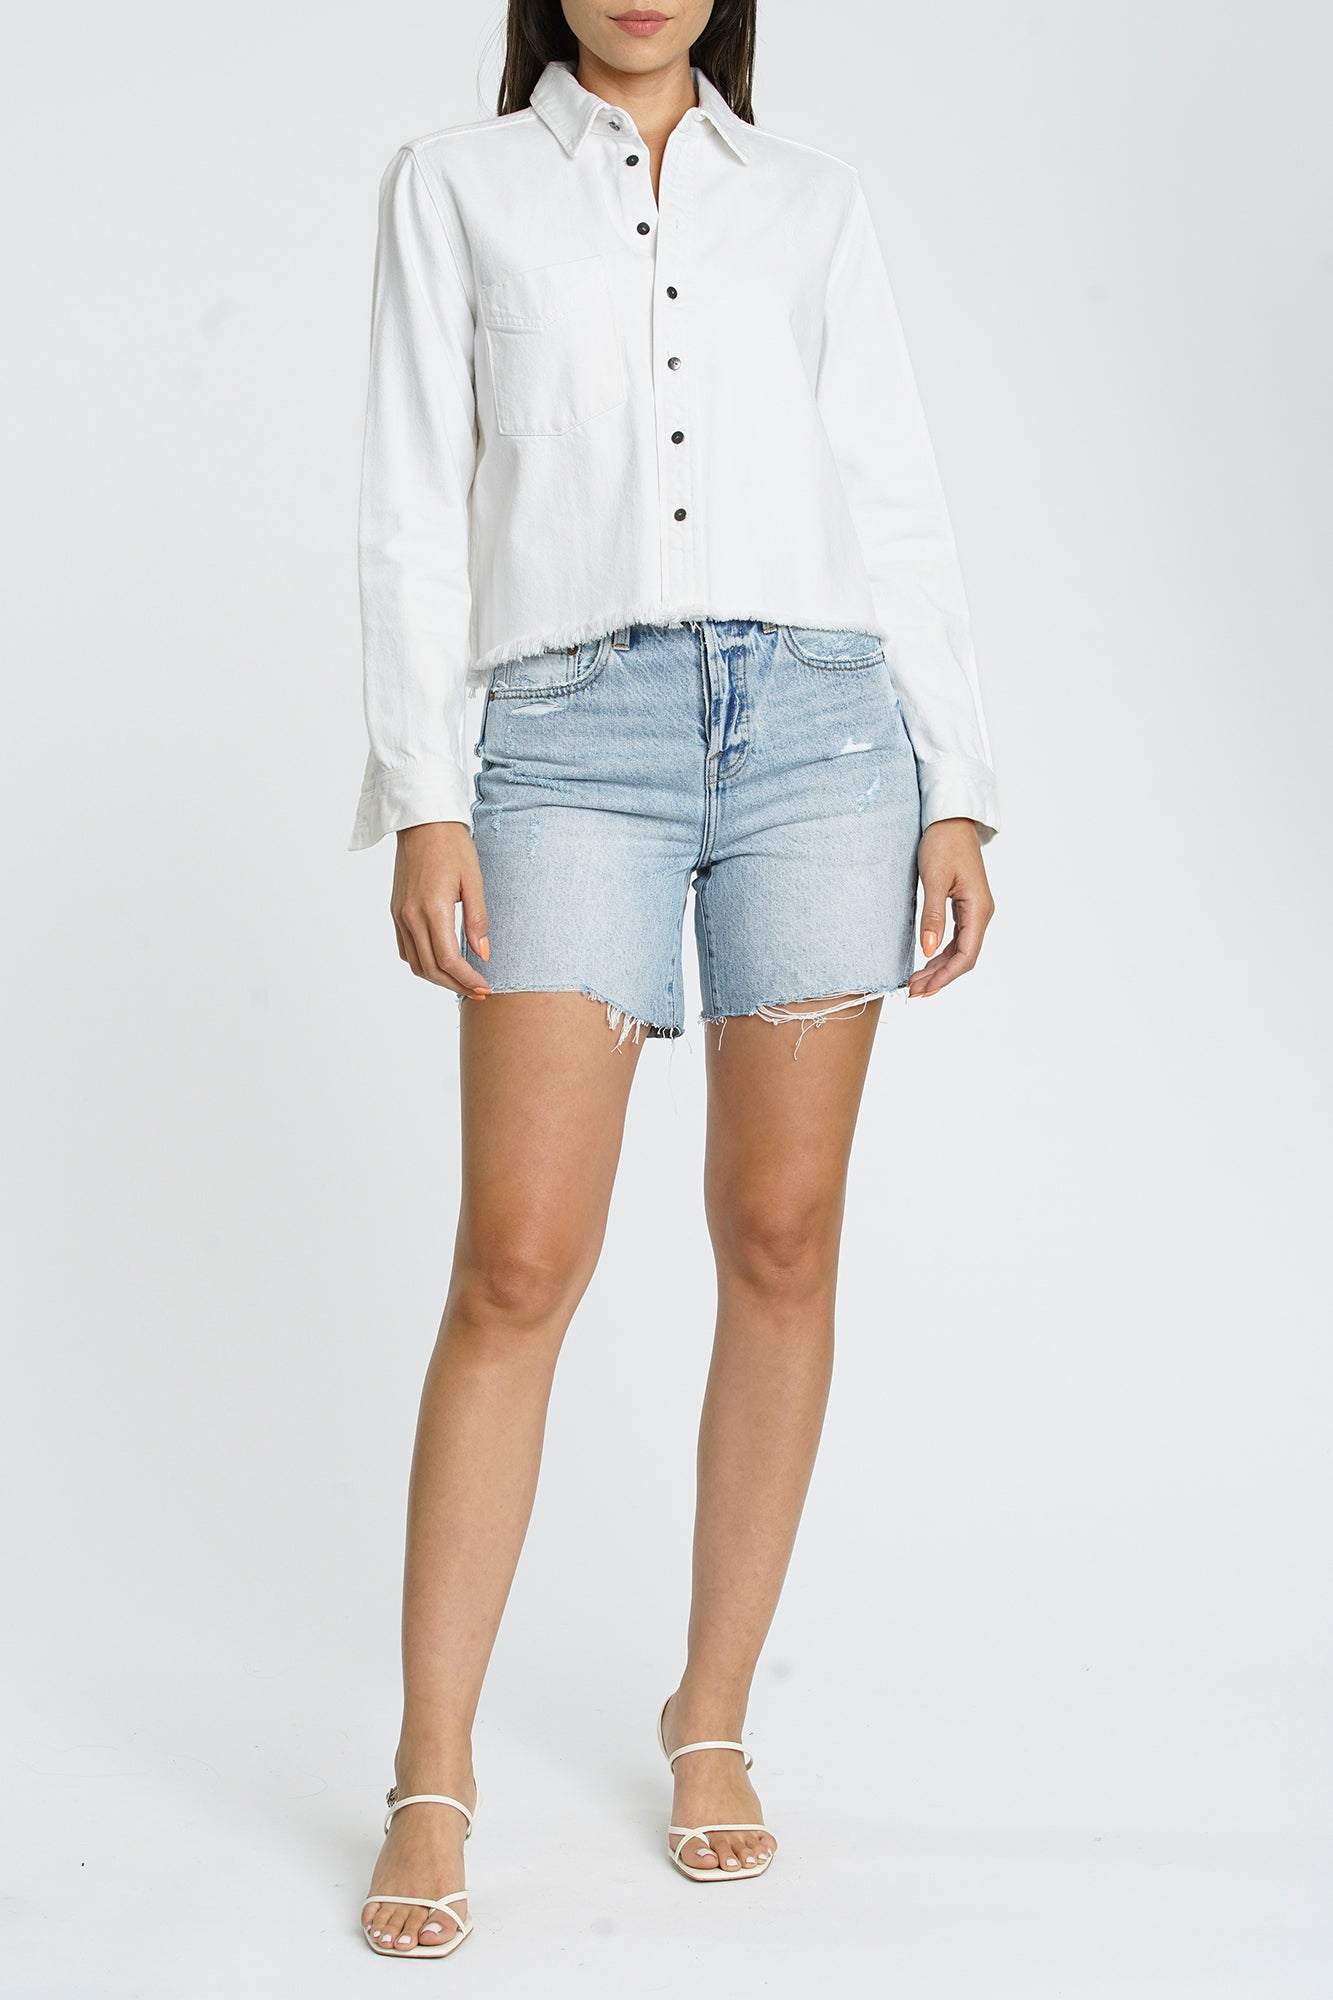 Hensley Cropped Denim Shirt - White Out